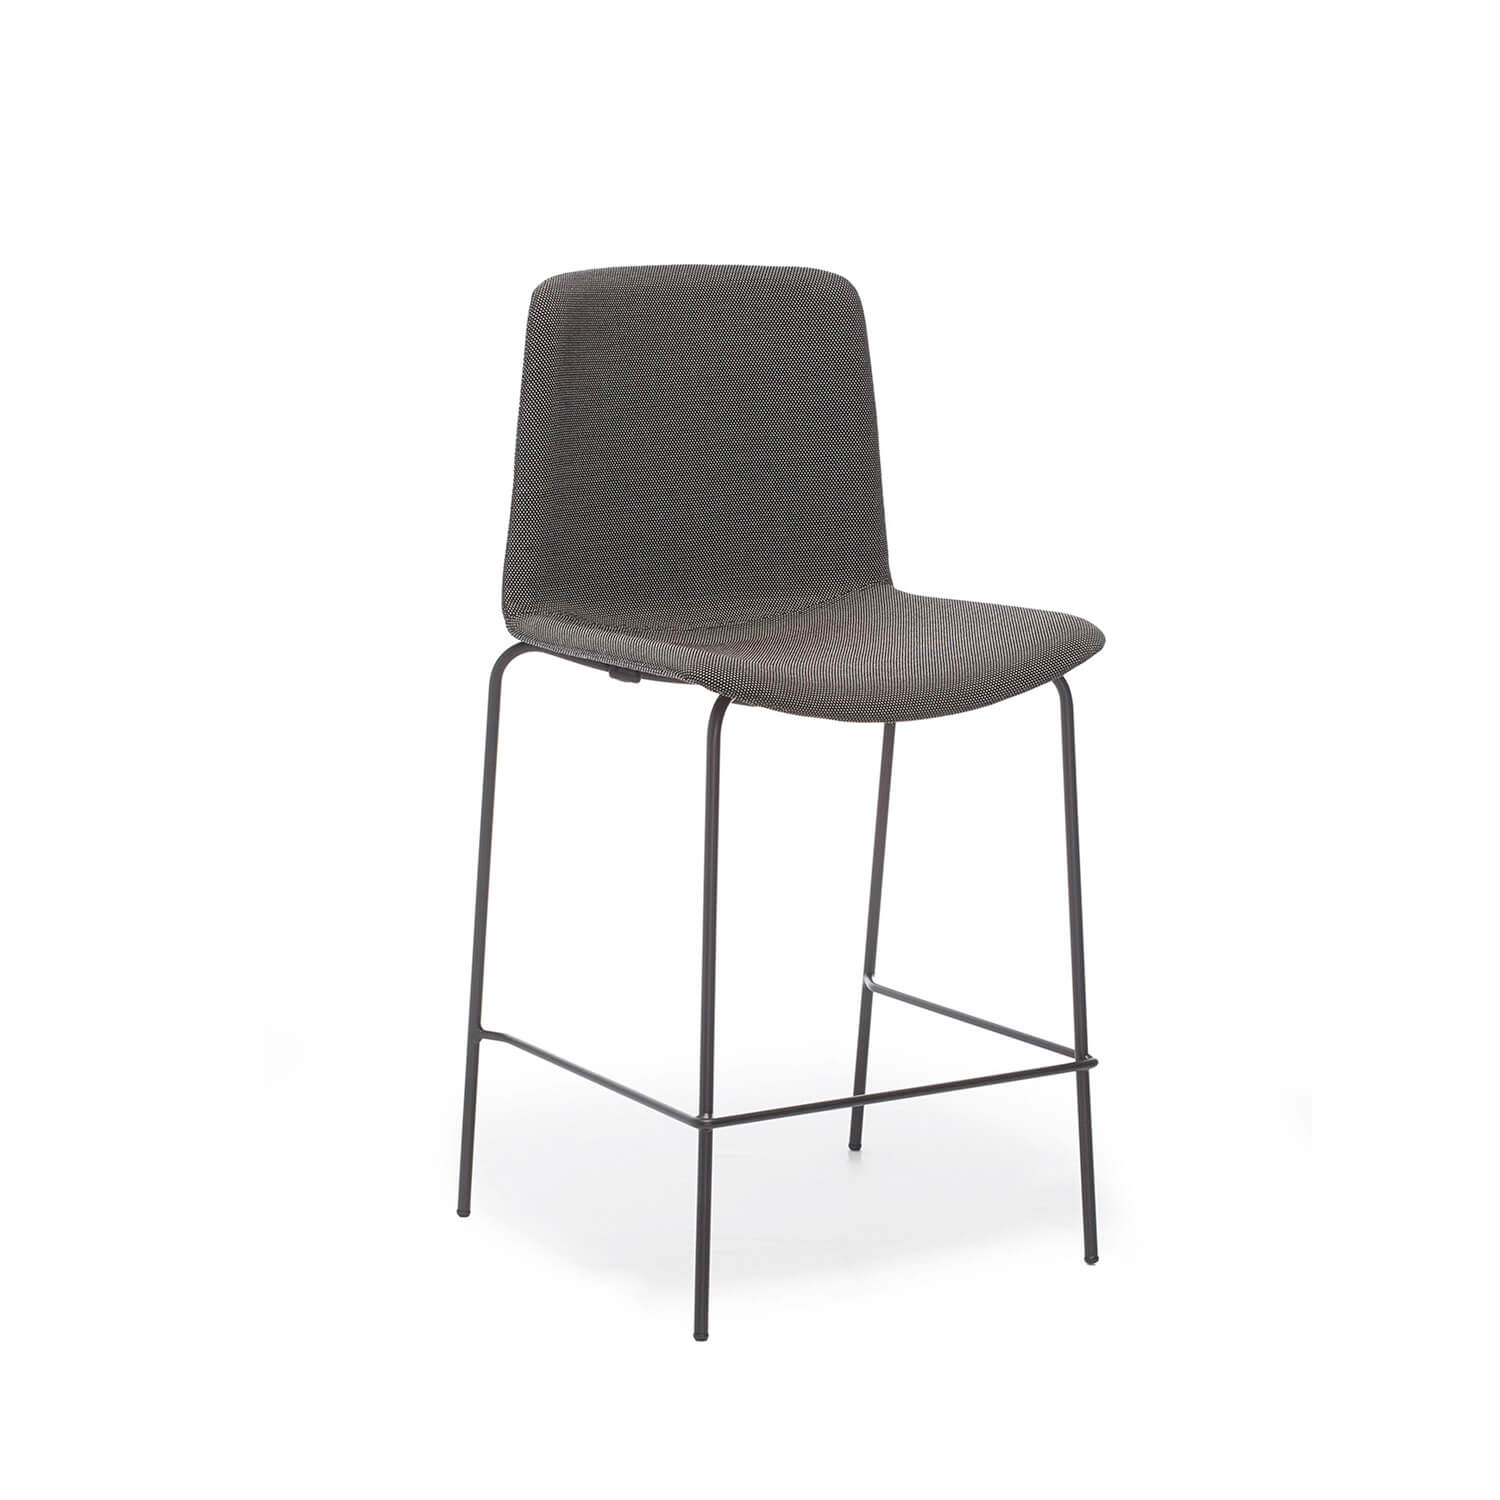 pedrali-tweet-soft-stool